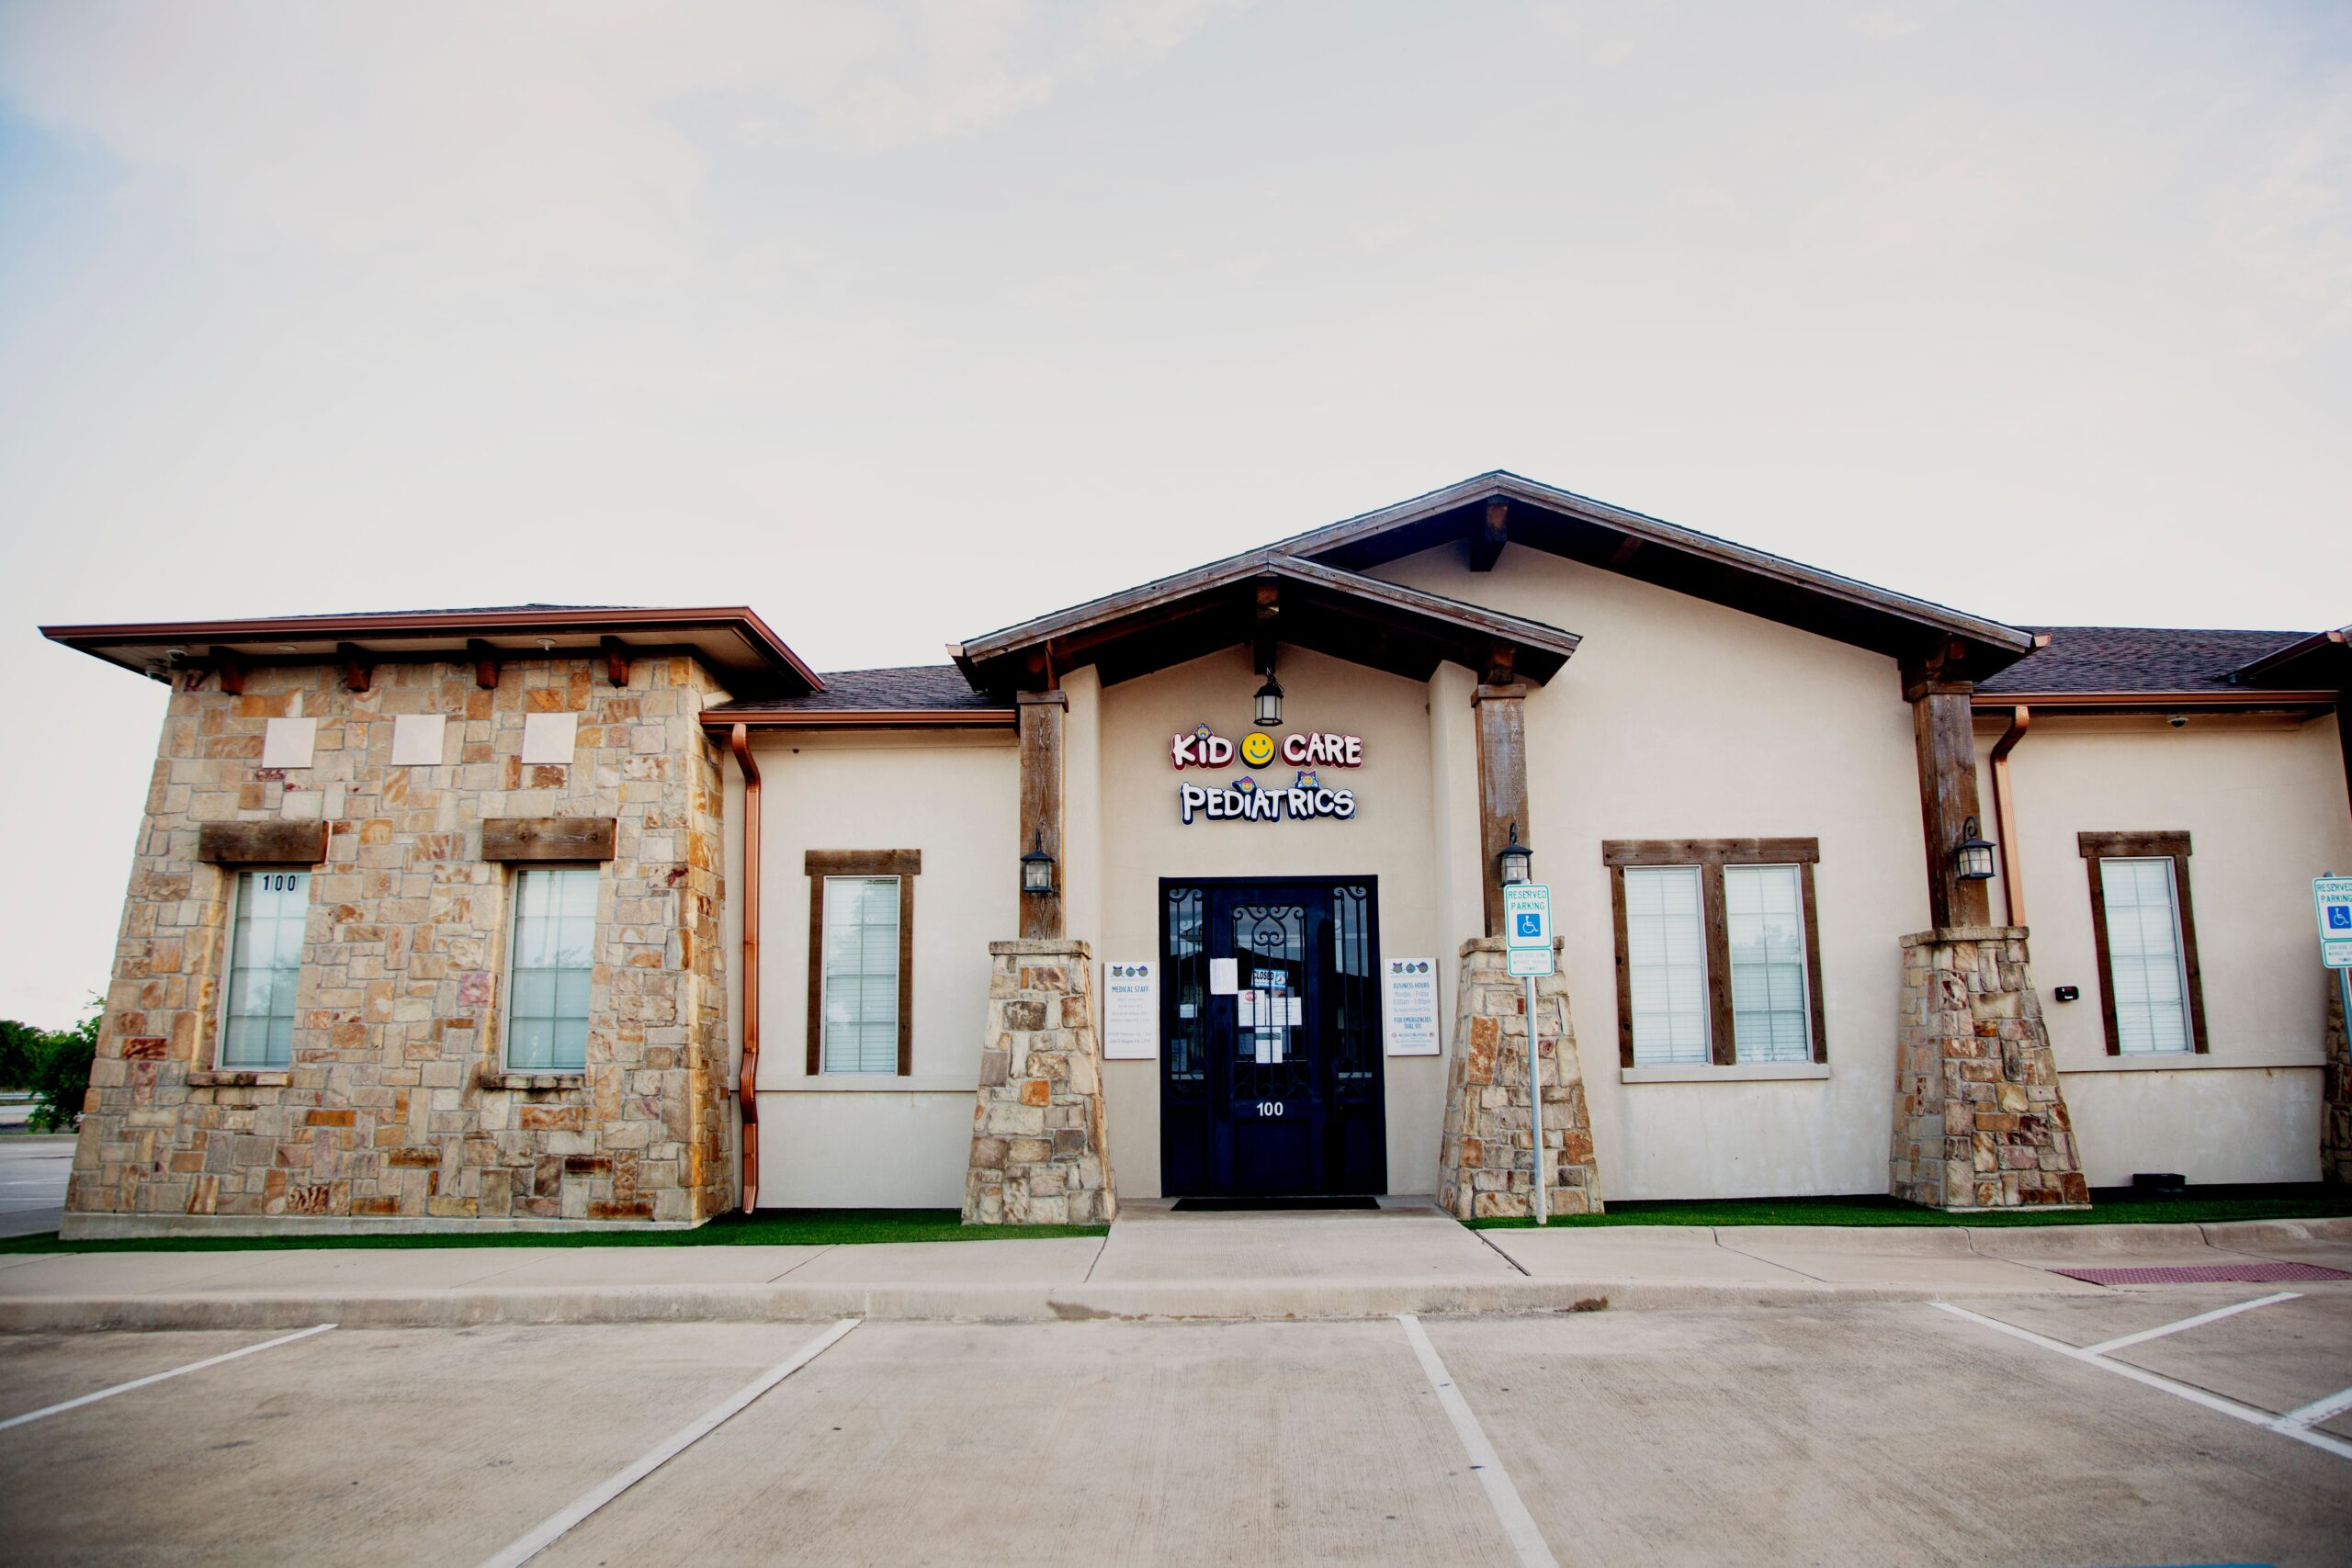 Kid Care Pediatrics office located in Haslet, Texas